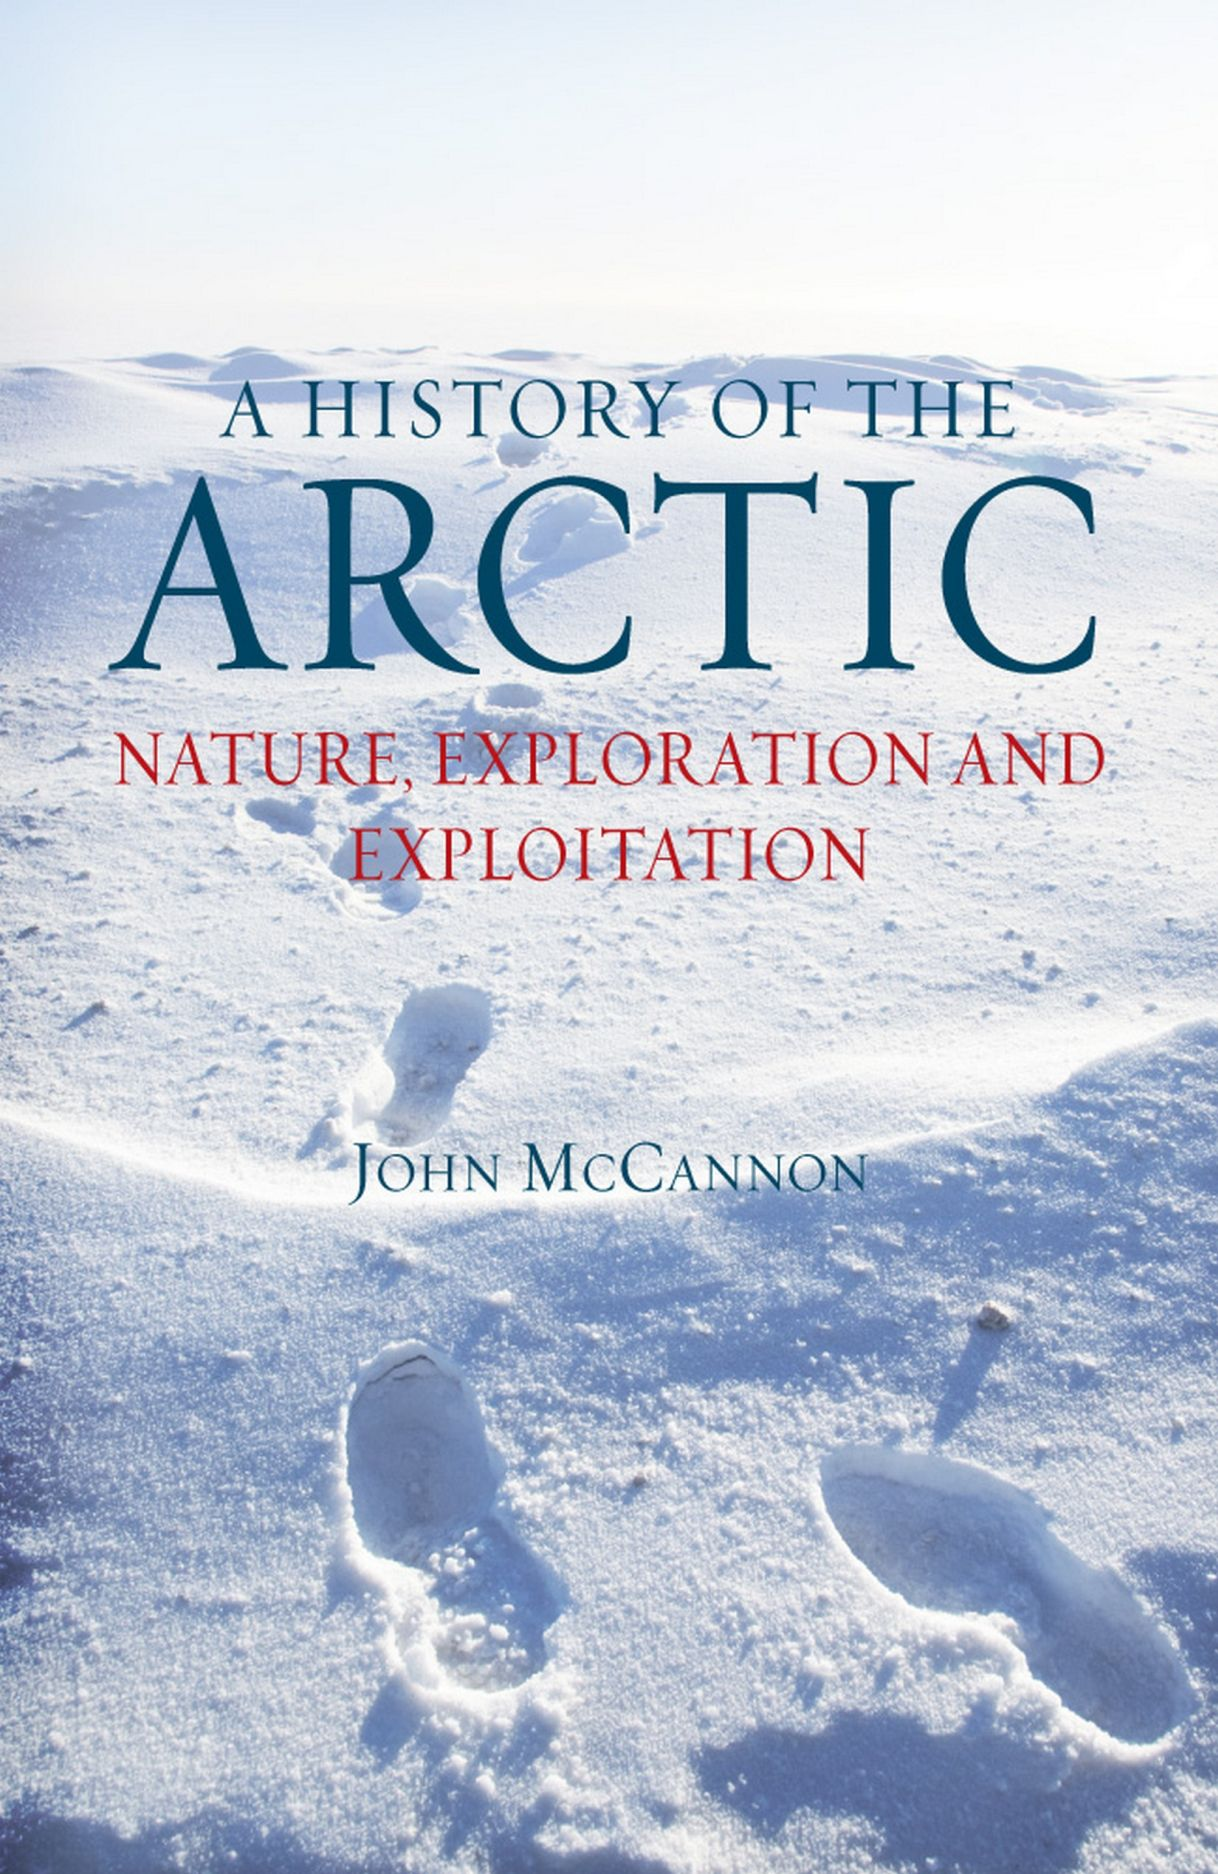 A History of the Arctic